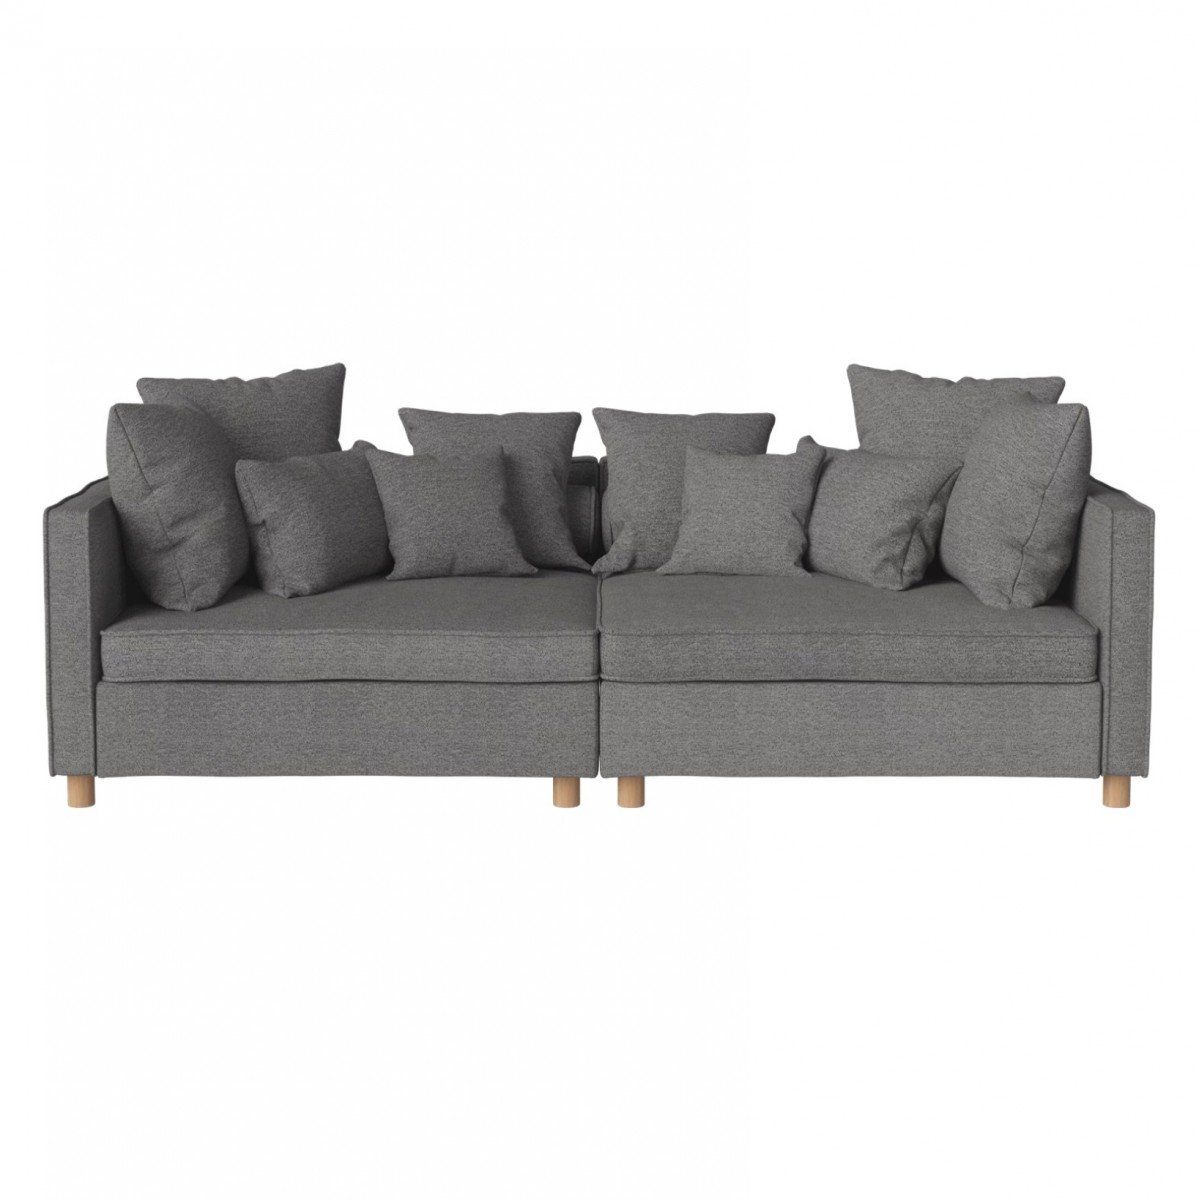 Big Sofa Vincent Mr Big Sofa 2 Units Bolia